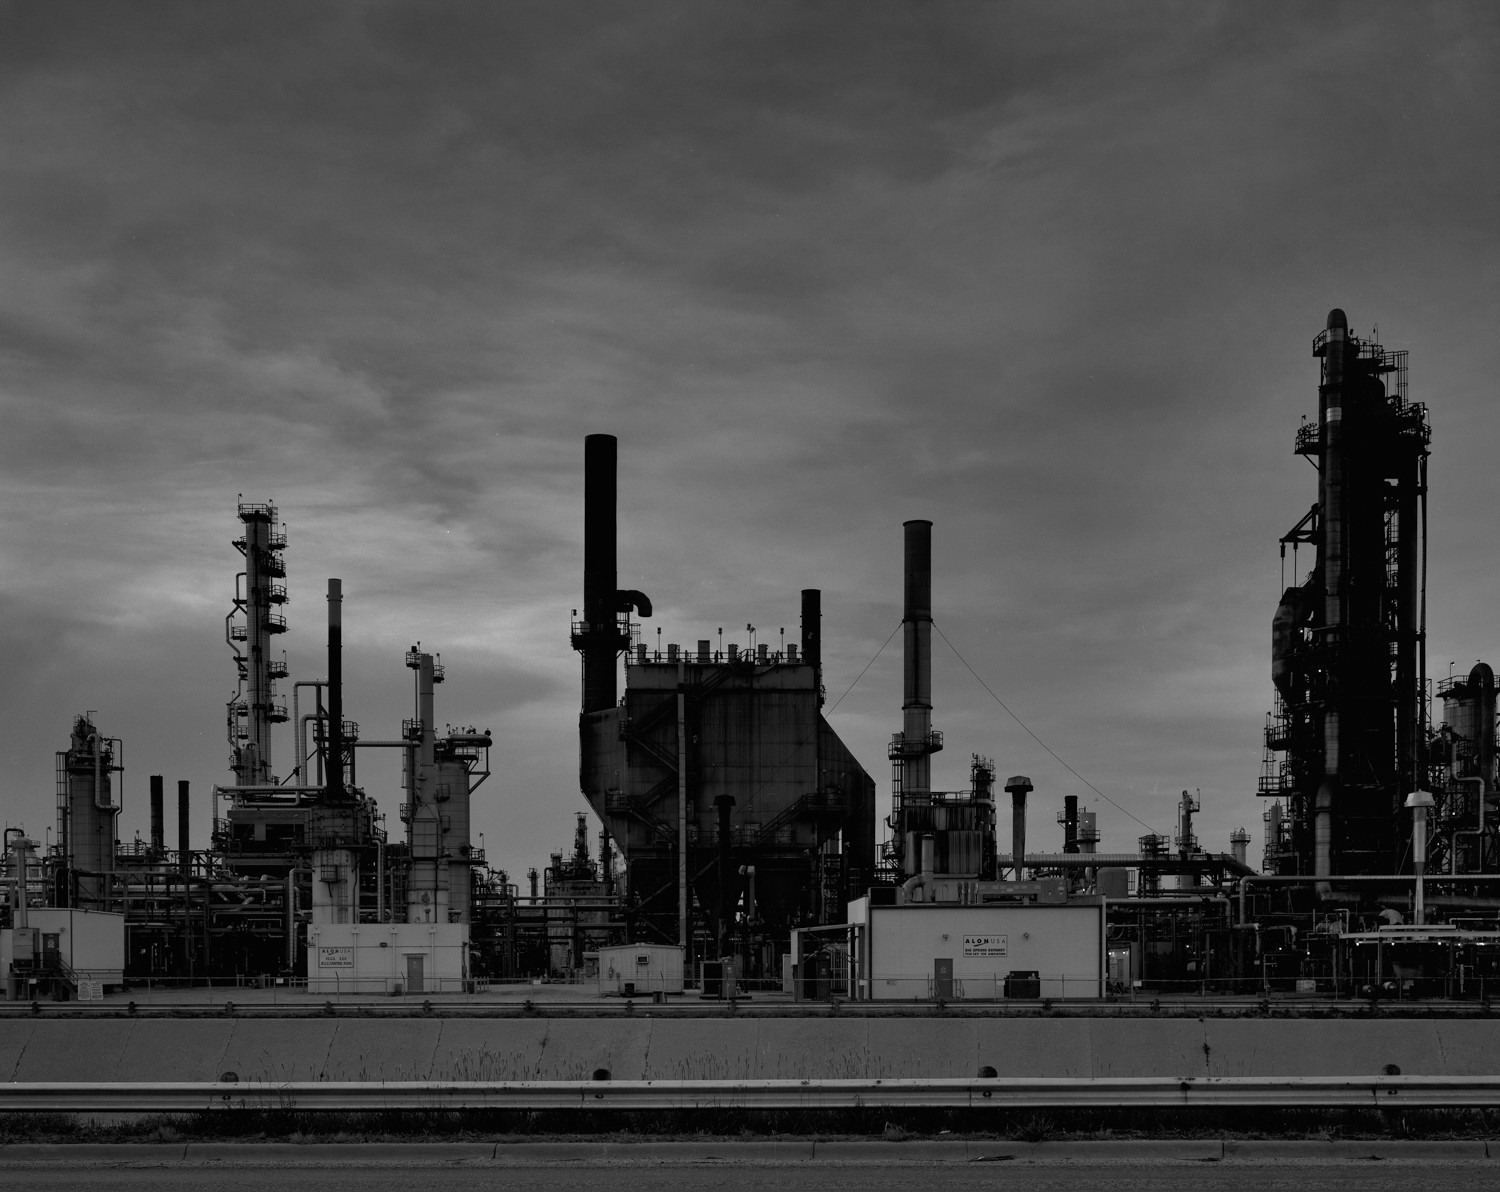 The military base at Big-Spring was transferred and the refinery which has been the main livelihood of the town for many years, is about to close down.